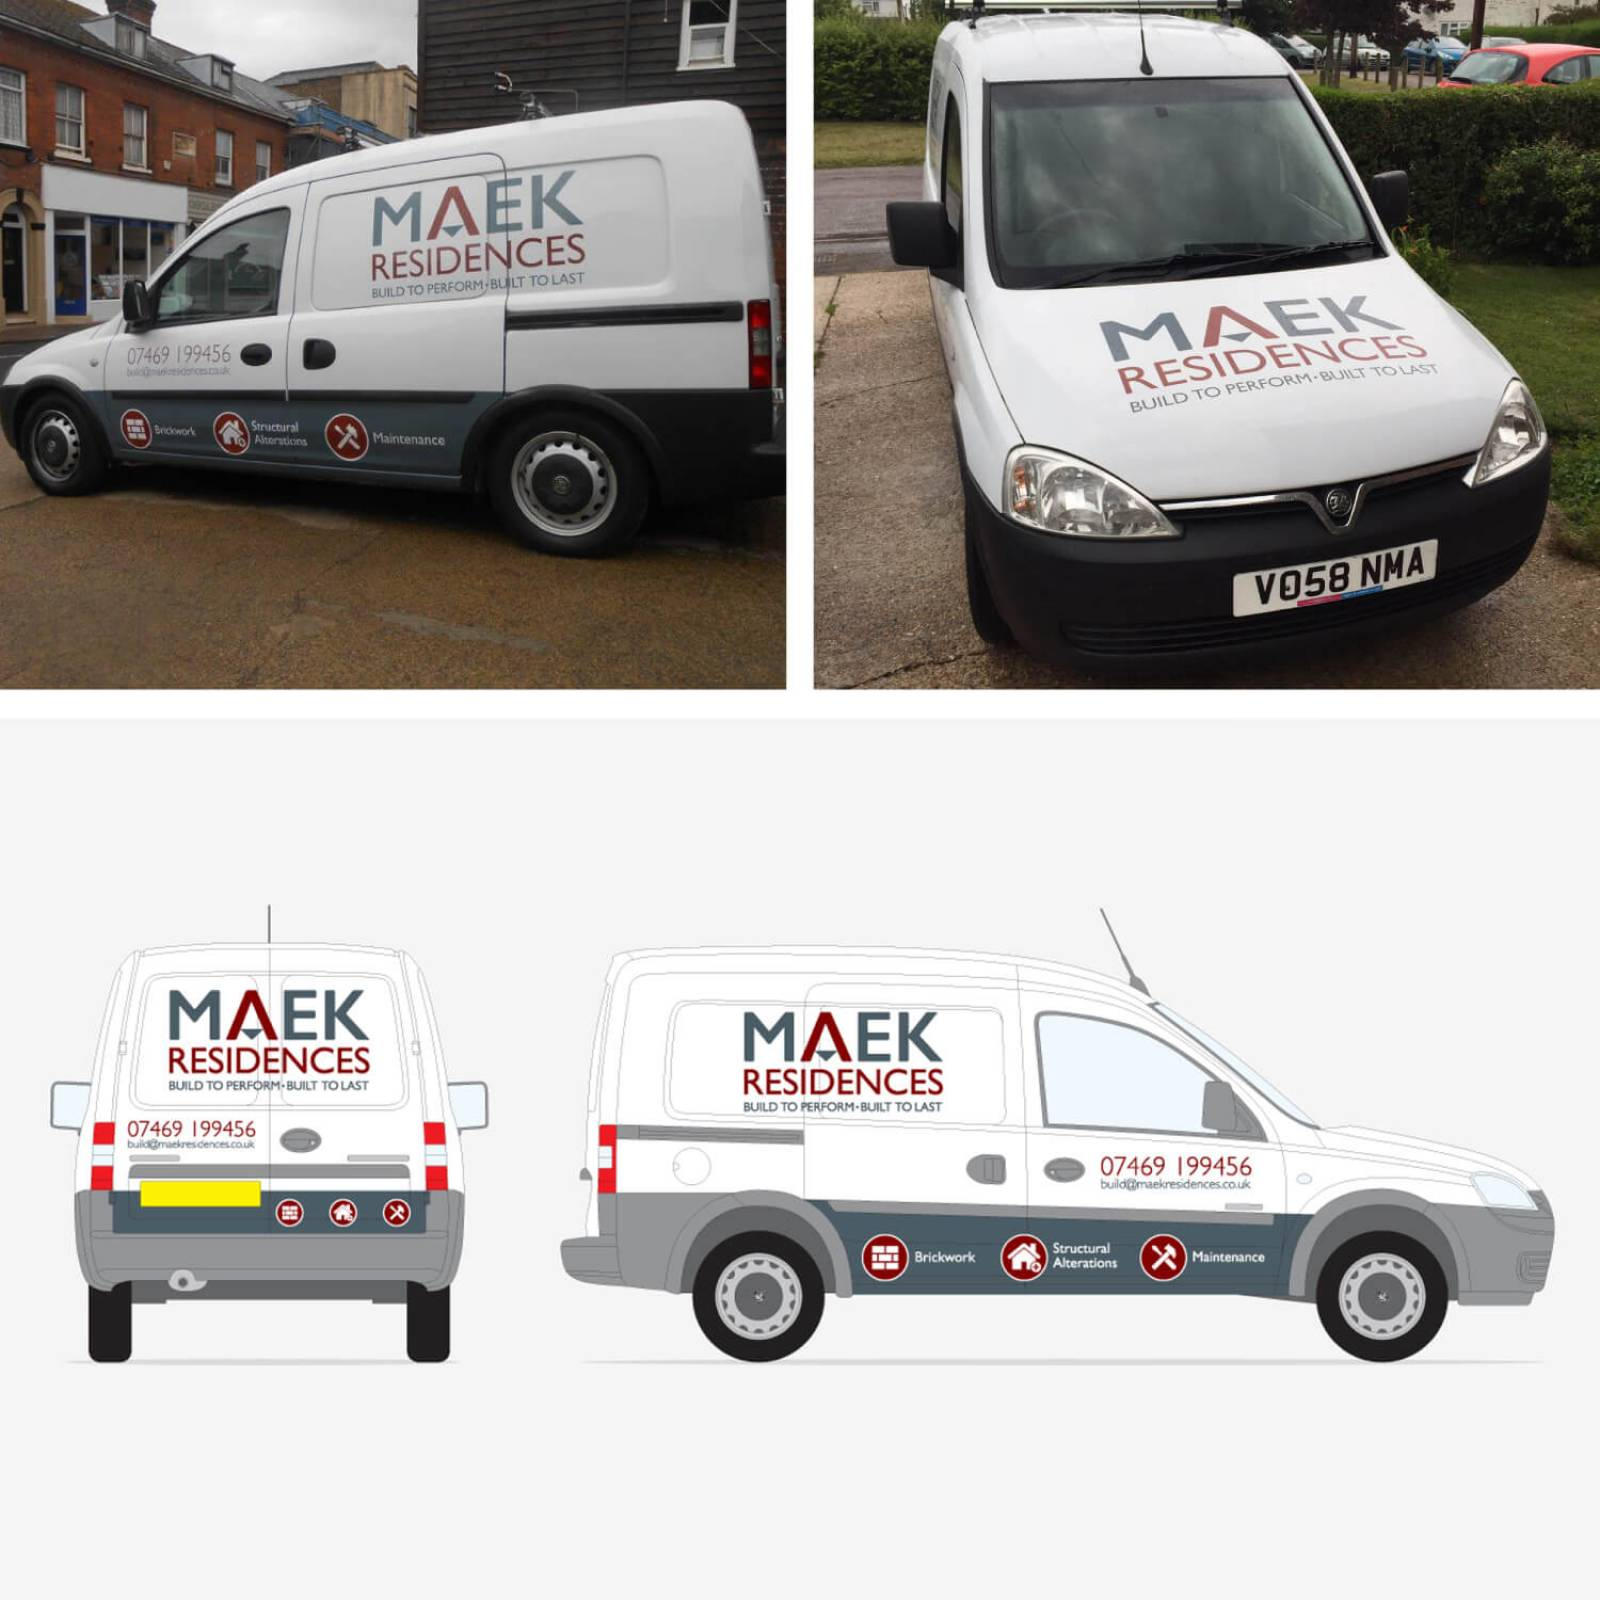 Vehicle-5-Maek-Canterbury-Graphic-Design.jpg